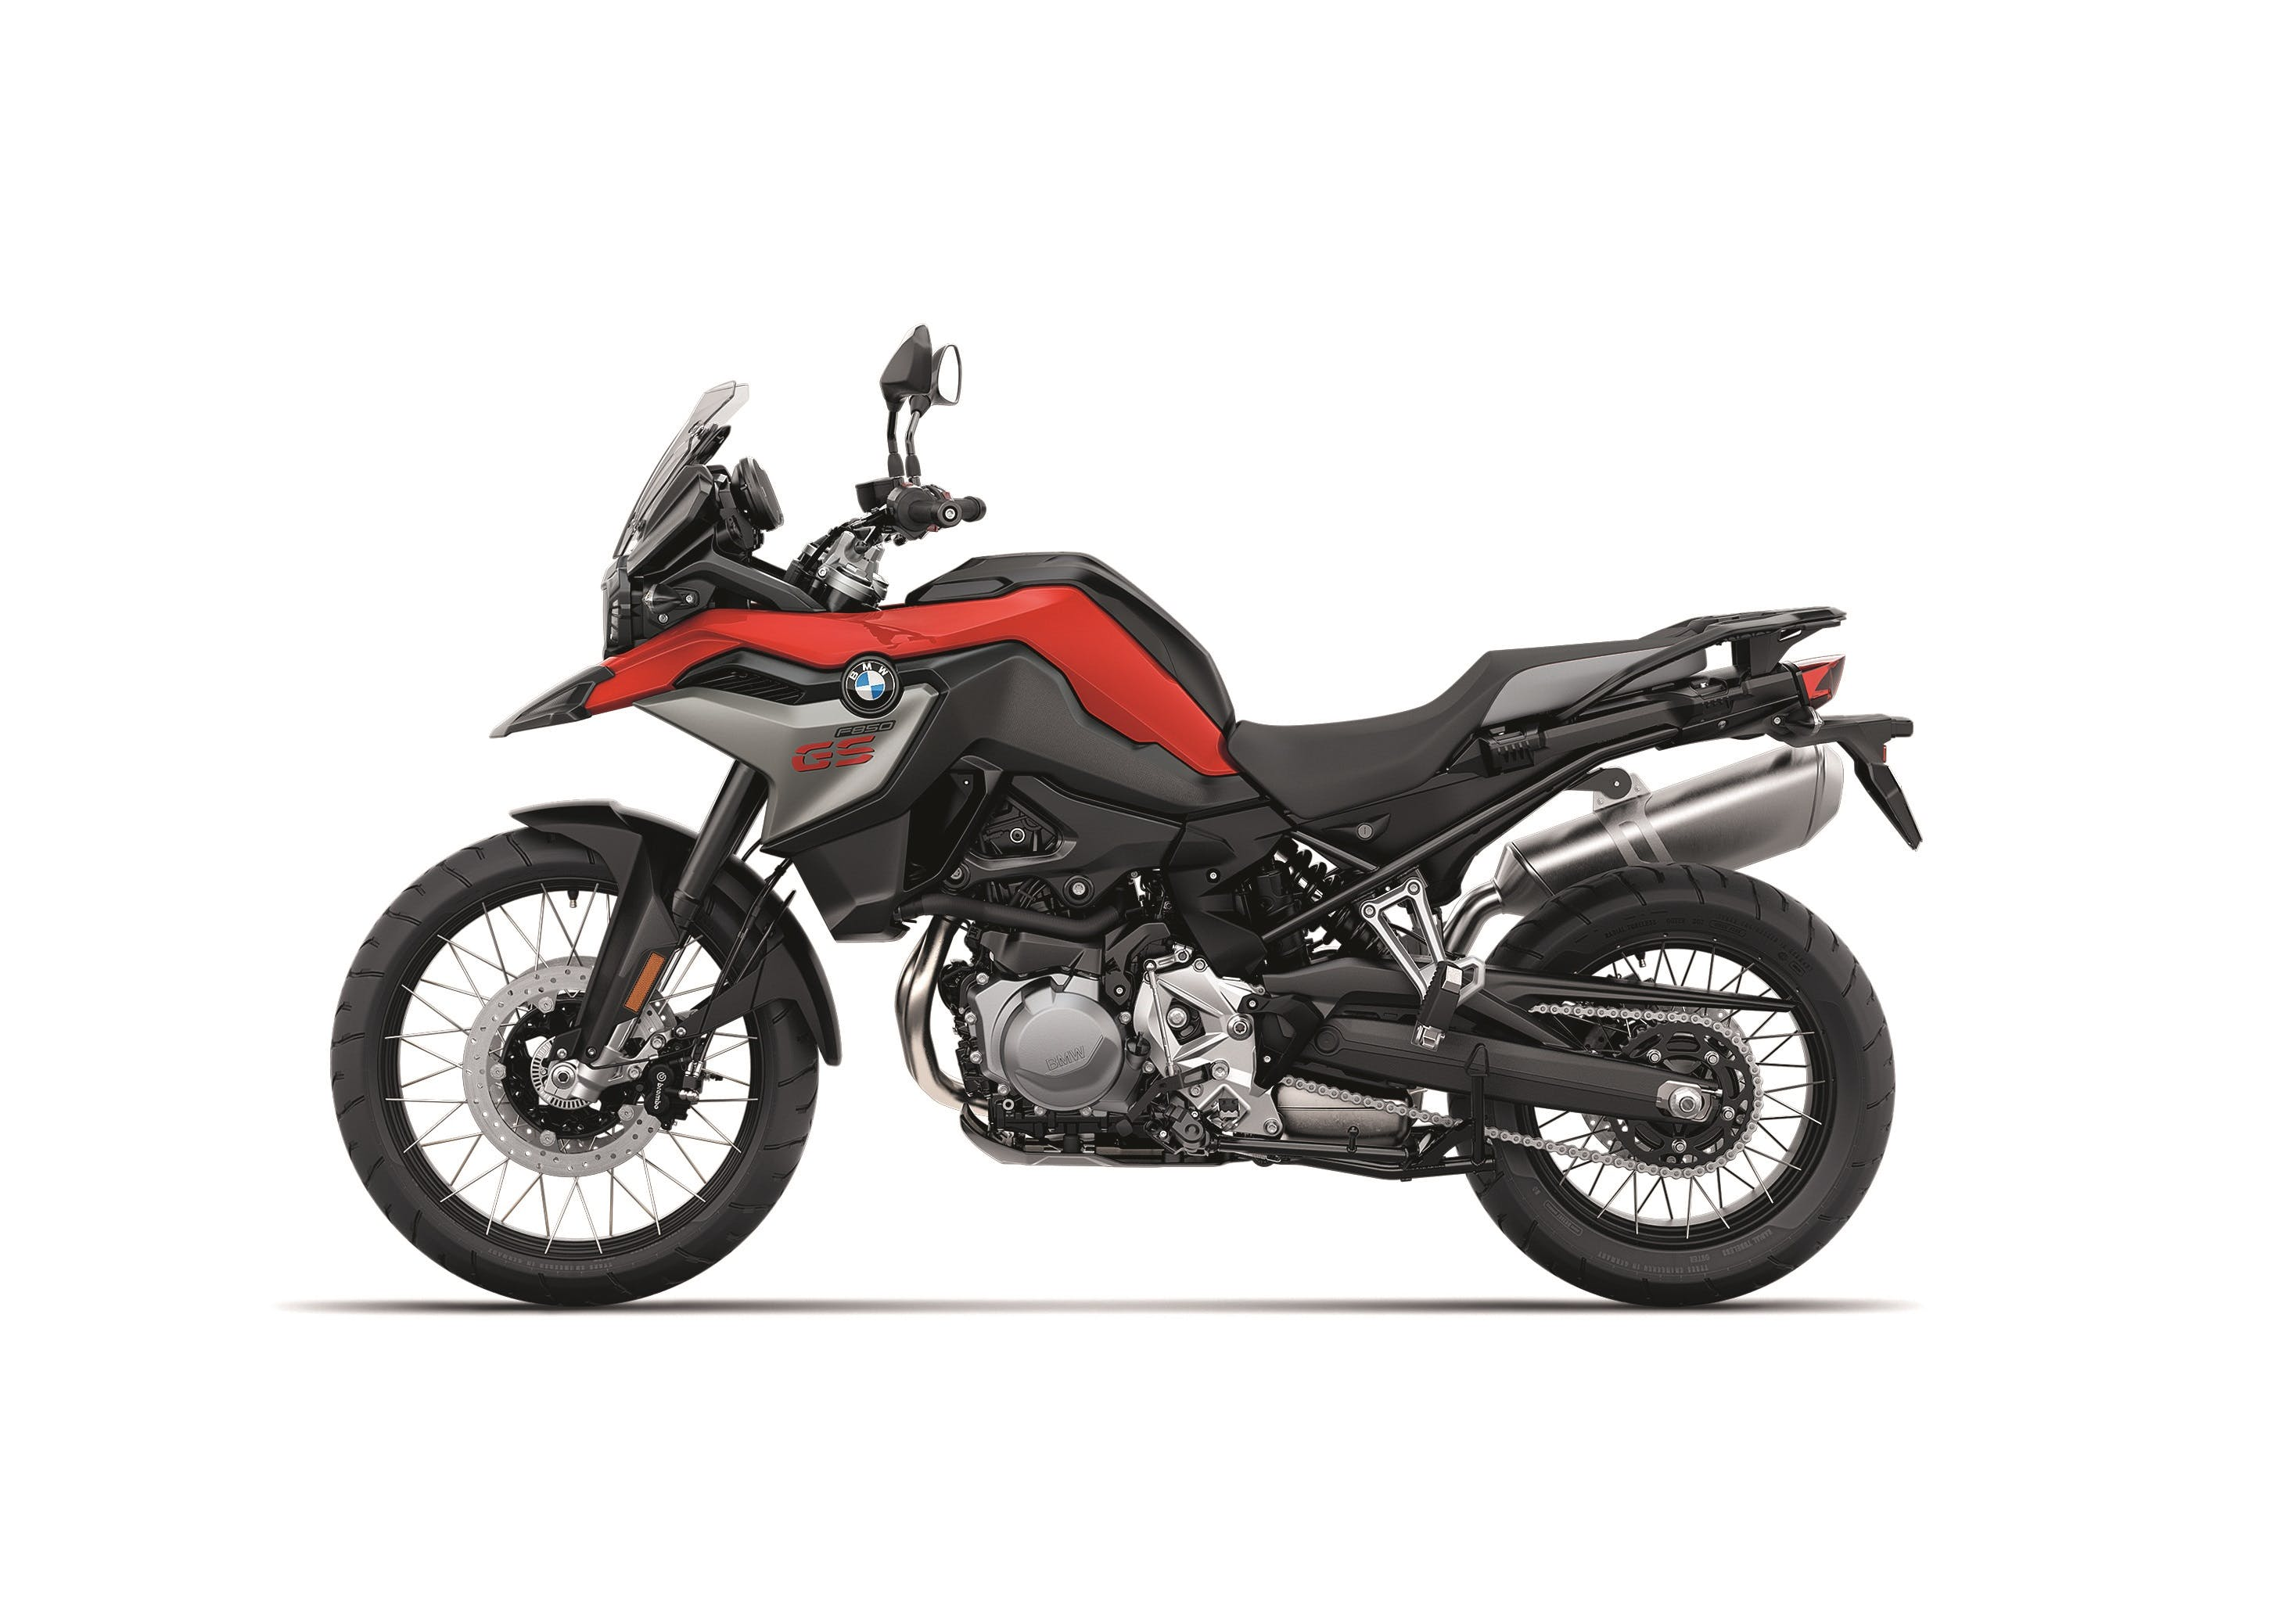 BMW F 850 GS racing red metallic colour